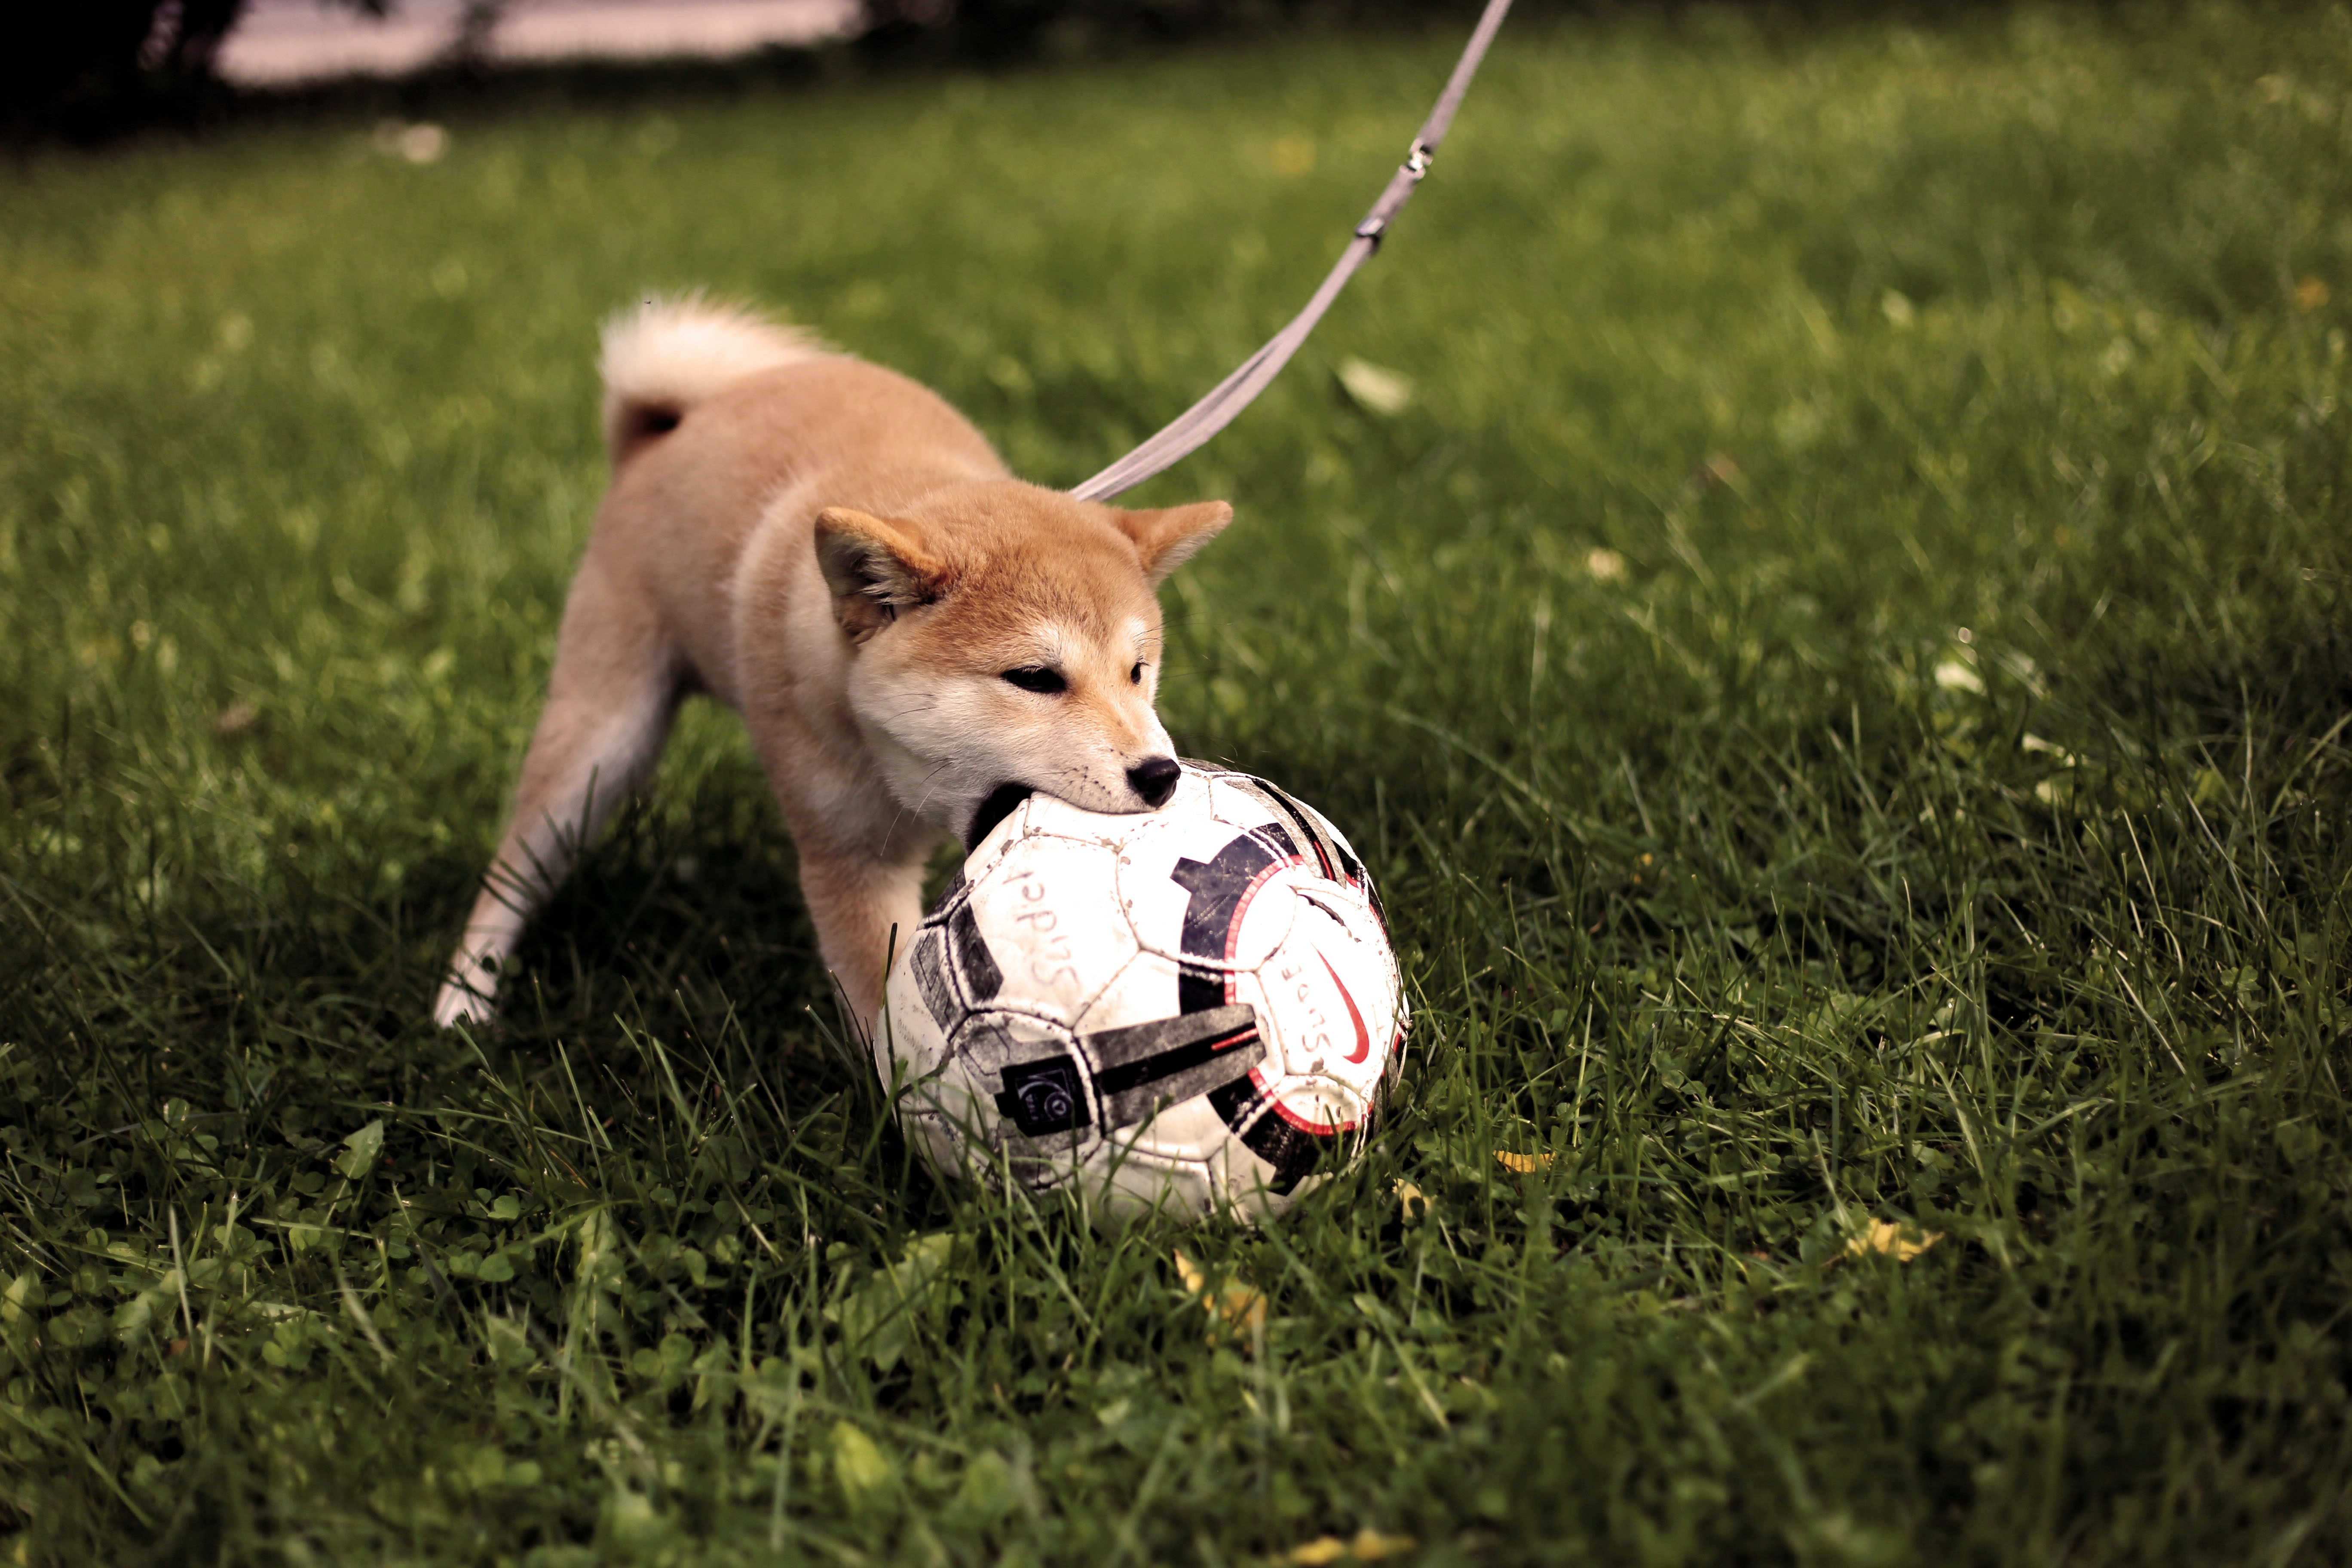 short-coated tan dog playing soccer ball on green grass field during daytime